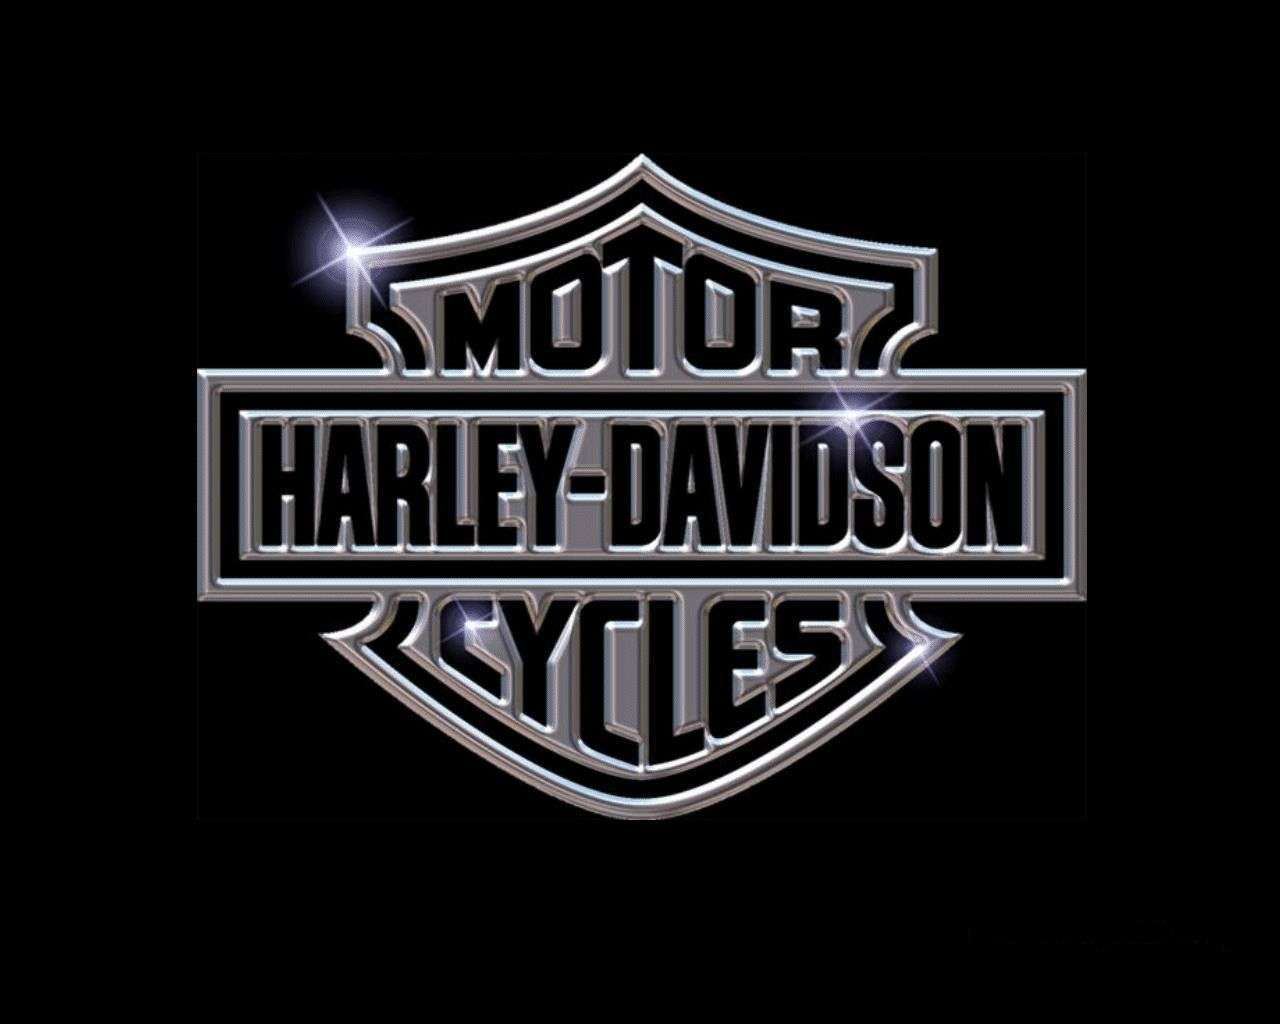 Harley Davidson Logo Wallpaper HD Widescreen | HD Wallpapers Source